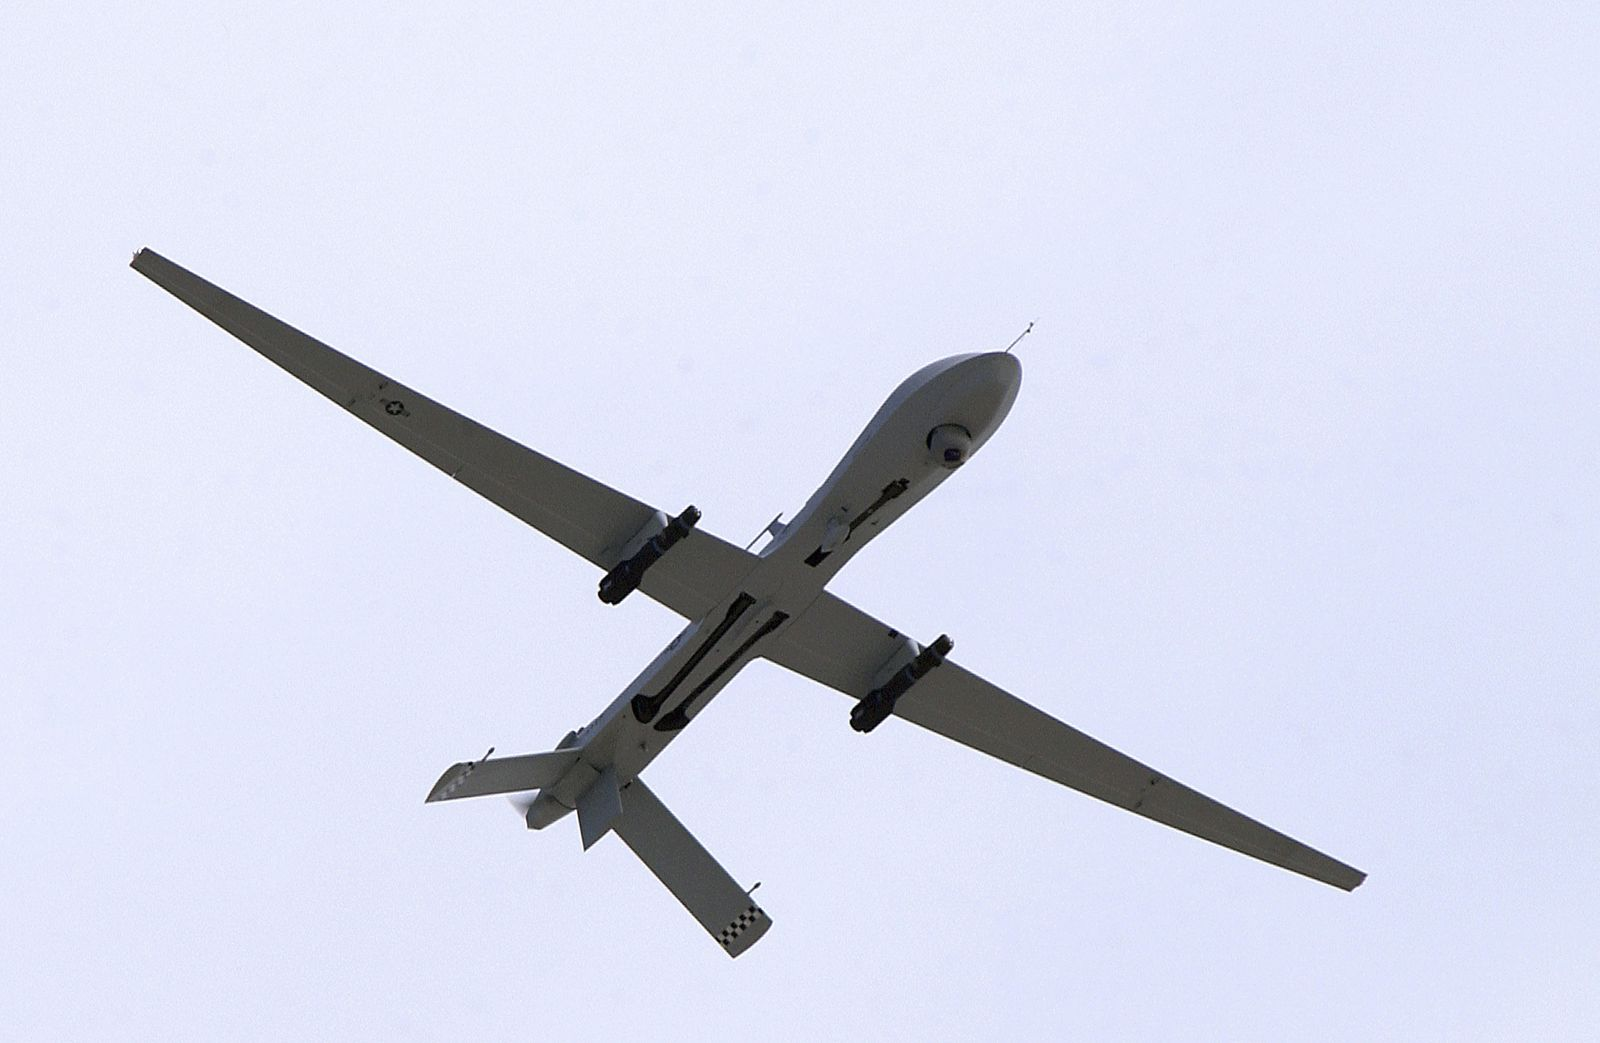 Drohne/ U.S. Air Force MQ-1 Predator